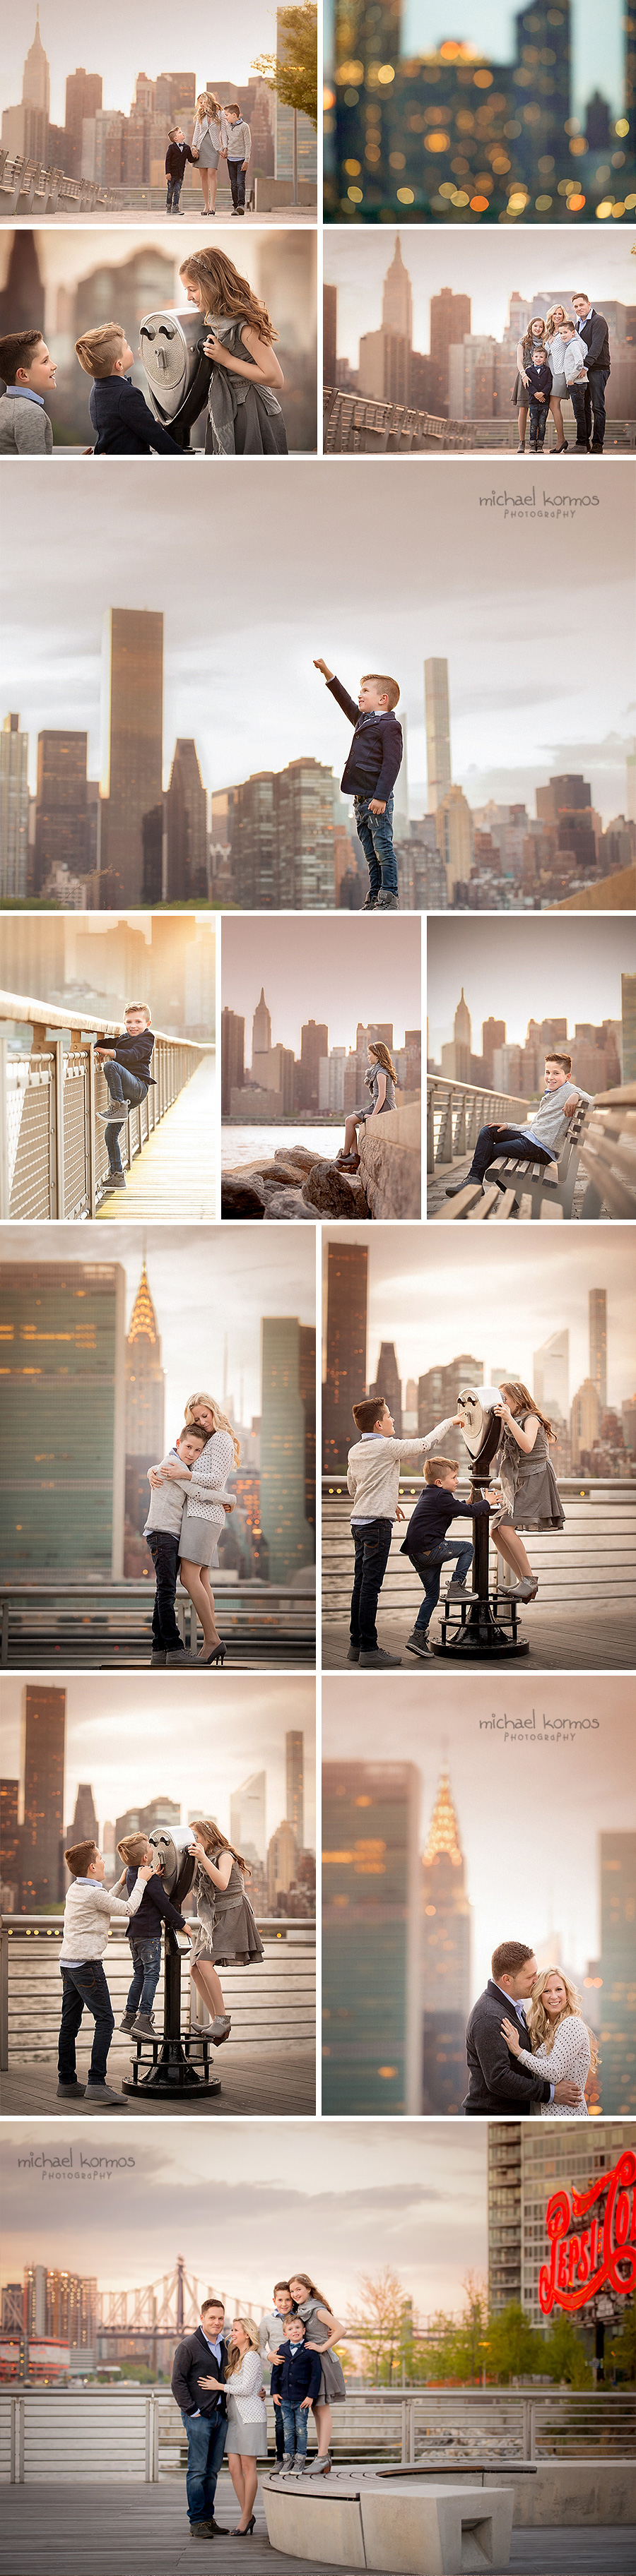 gantry plaza park family photo shoot